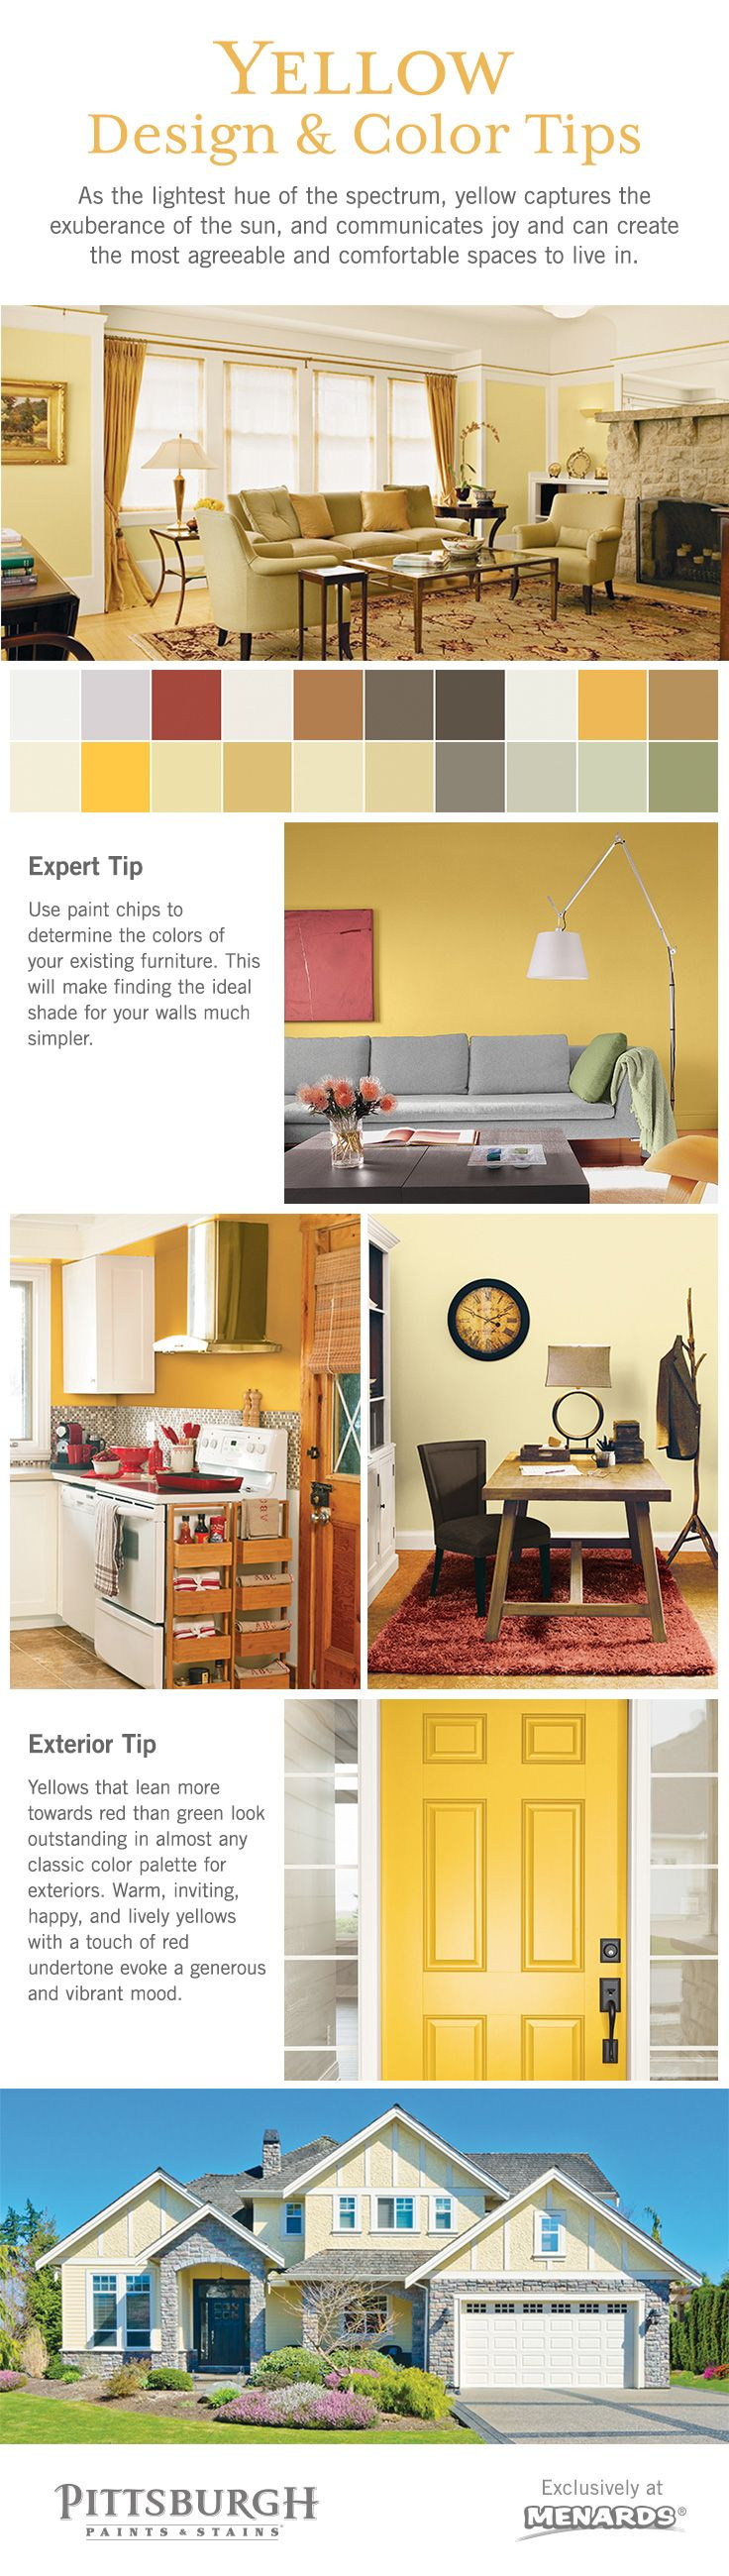 Yellow Color & Design Inspiration! As the lightest hue of the ...